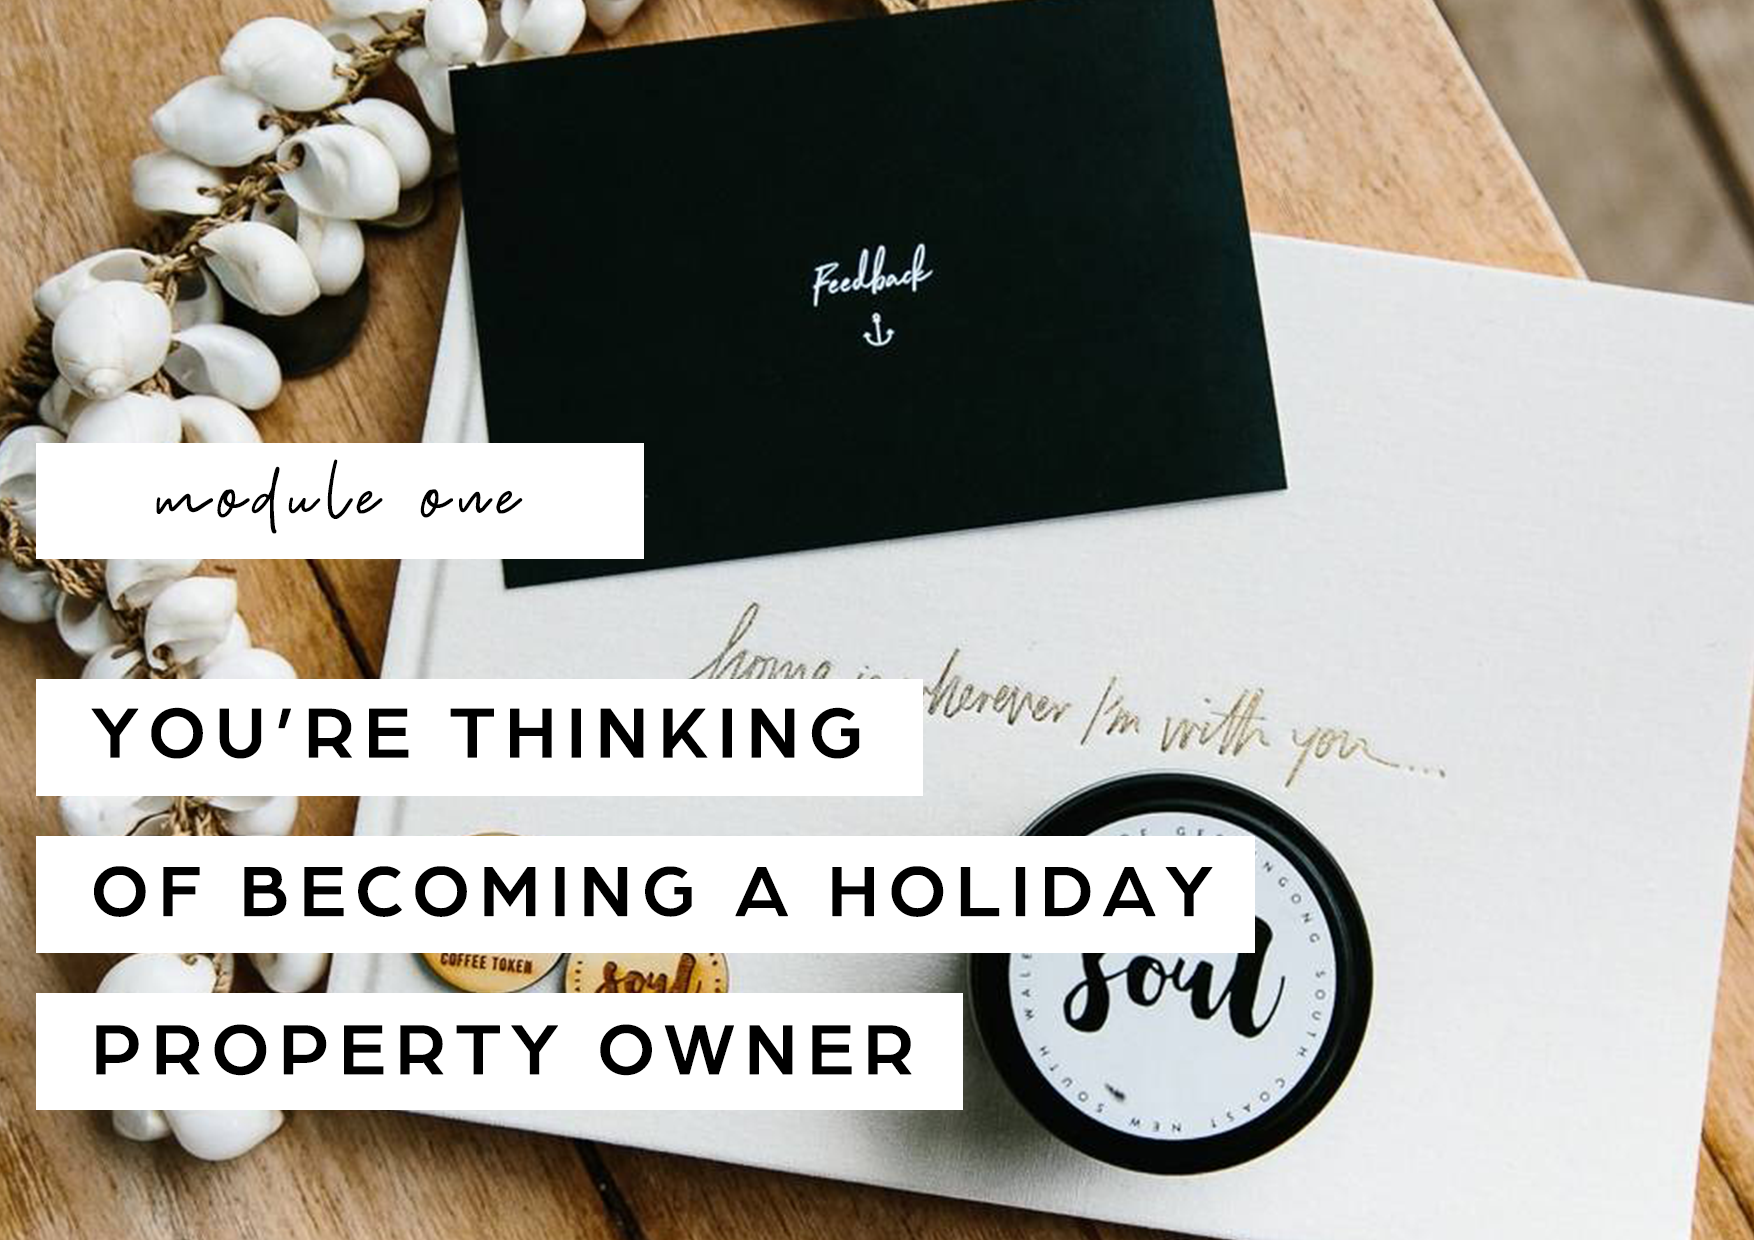 Discover the good, the bad and the in-betweens of being a Holiday Property Owner (HPO) as well getting clarity on your own purpose. Understand what to look for in a property and the value of research - and we've already done lots of it for you, to put you on the right track and save you time. Then there's the business side of things - finance, insurance, tax and more.